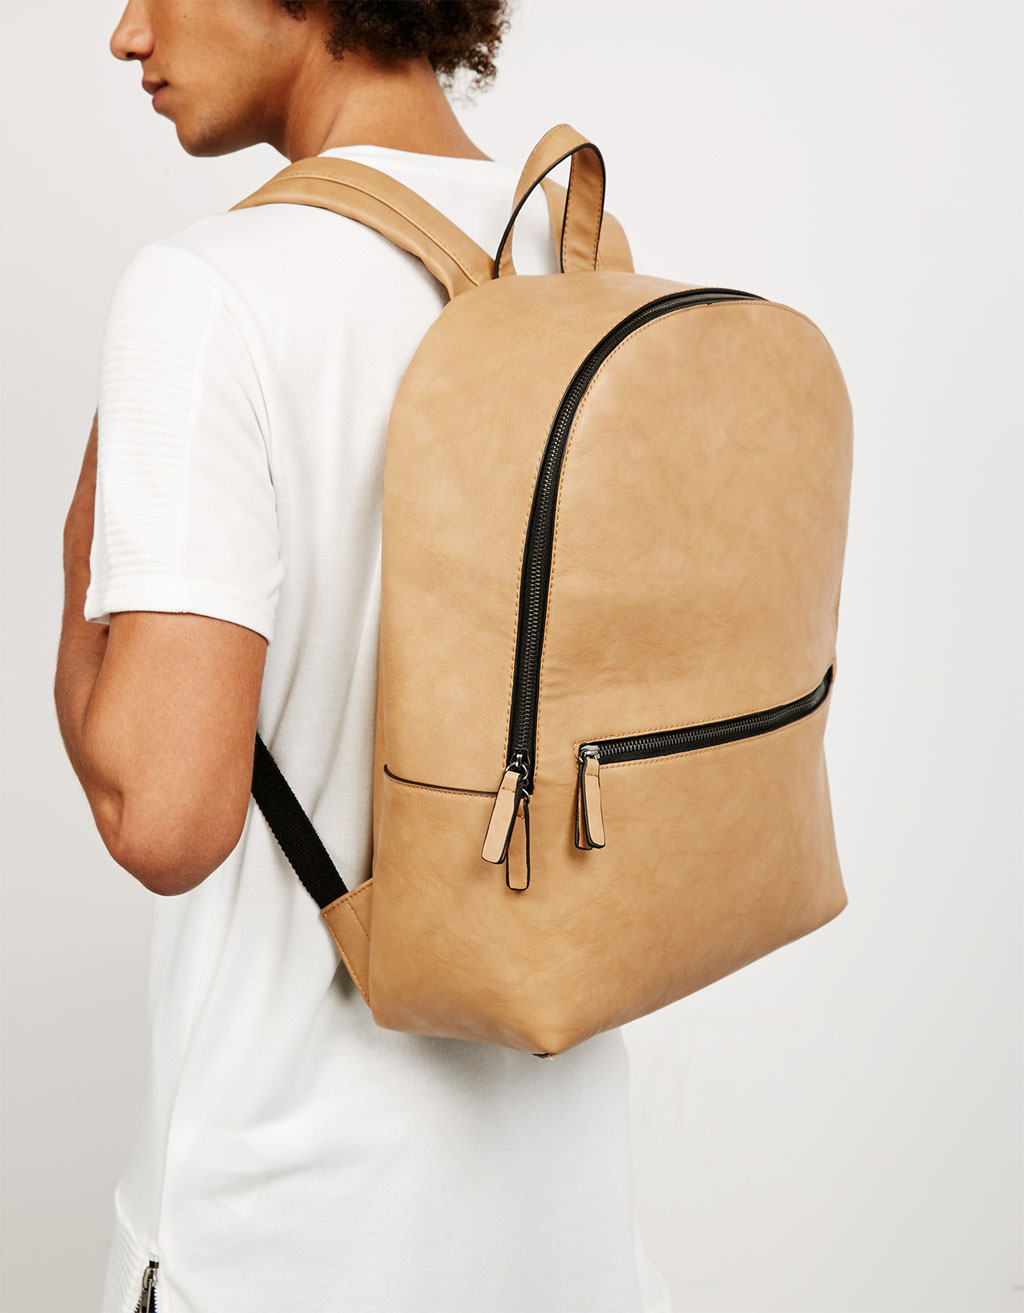 'Project Lab' backpack